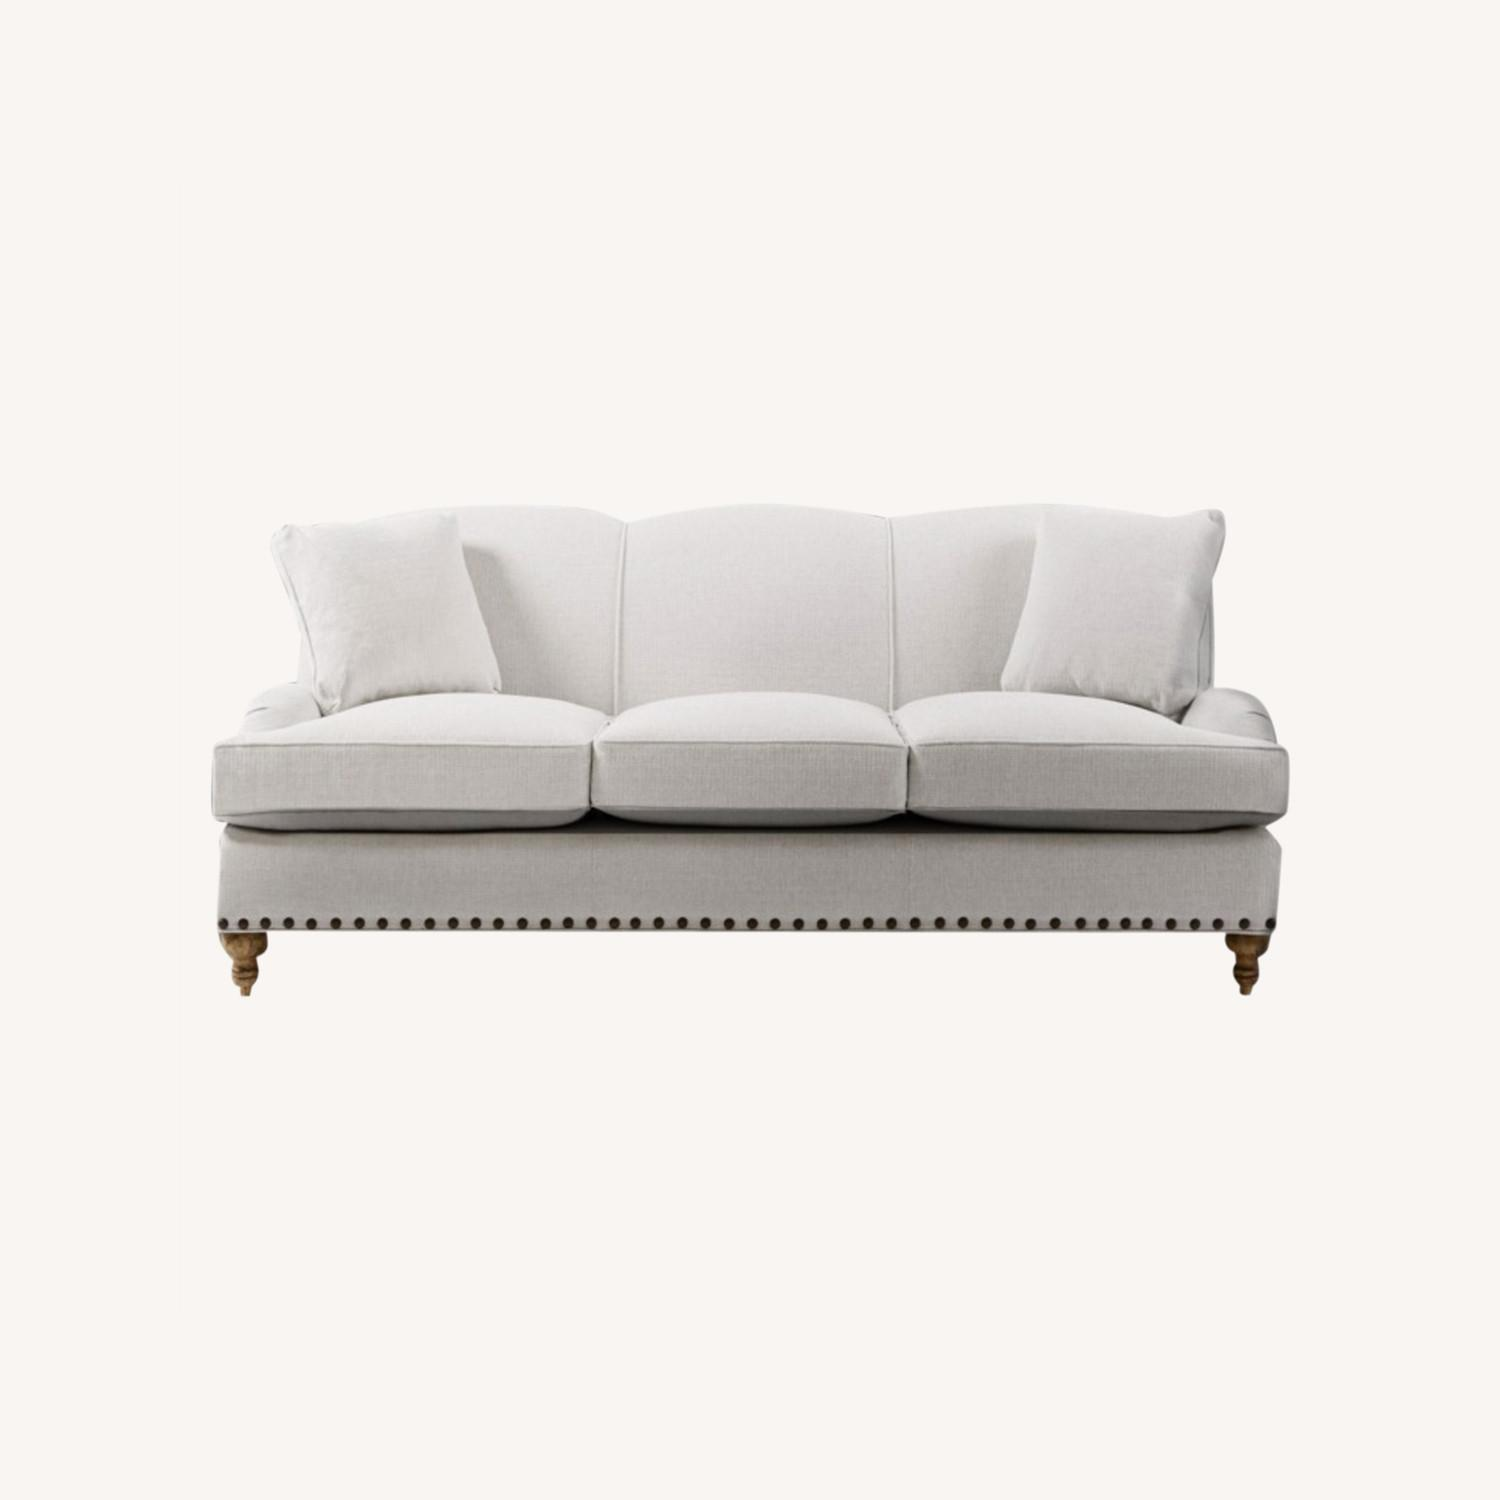 Arhaus White Couch - image-0